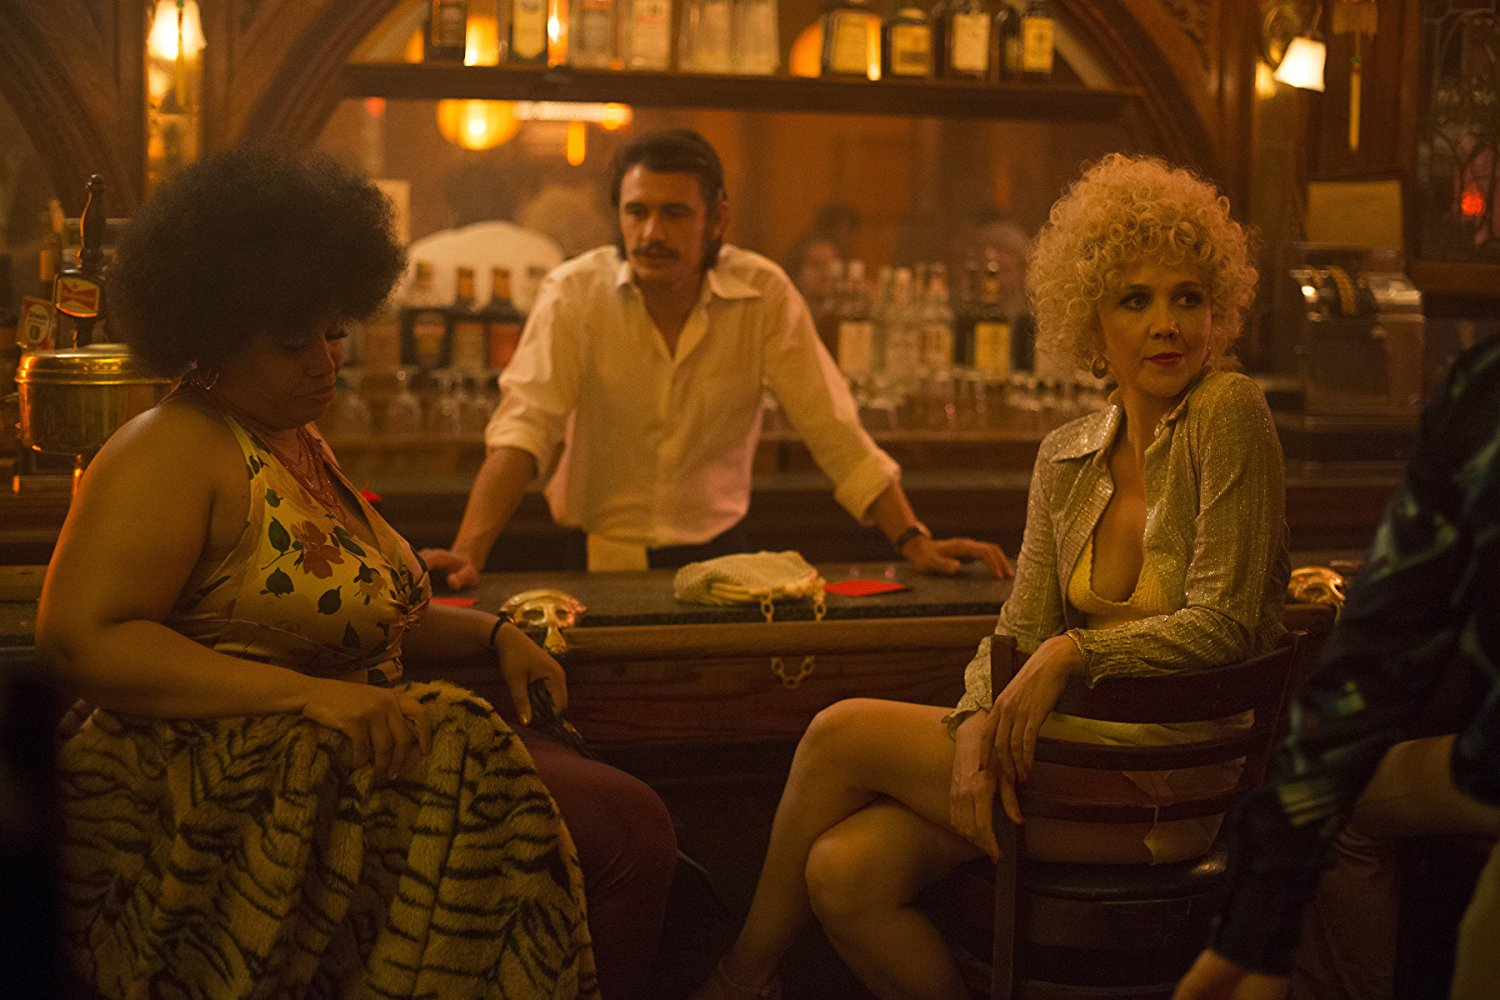 The Deuce Doubles up on the Burgeoning Porn Biz